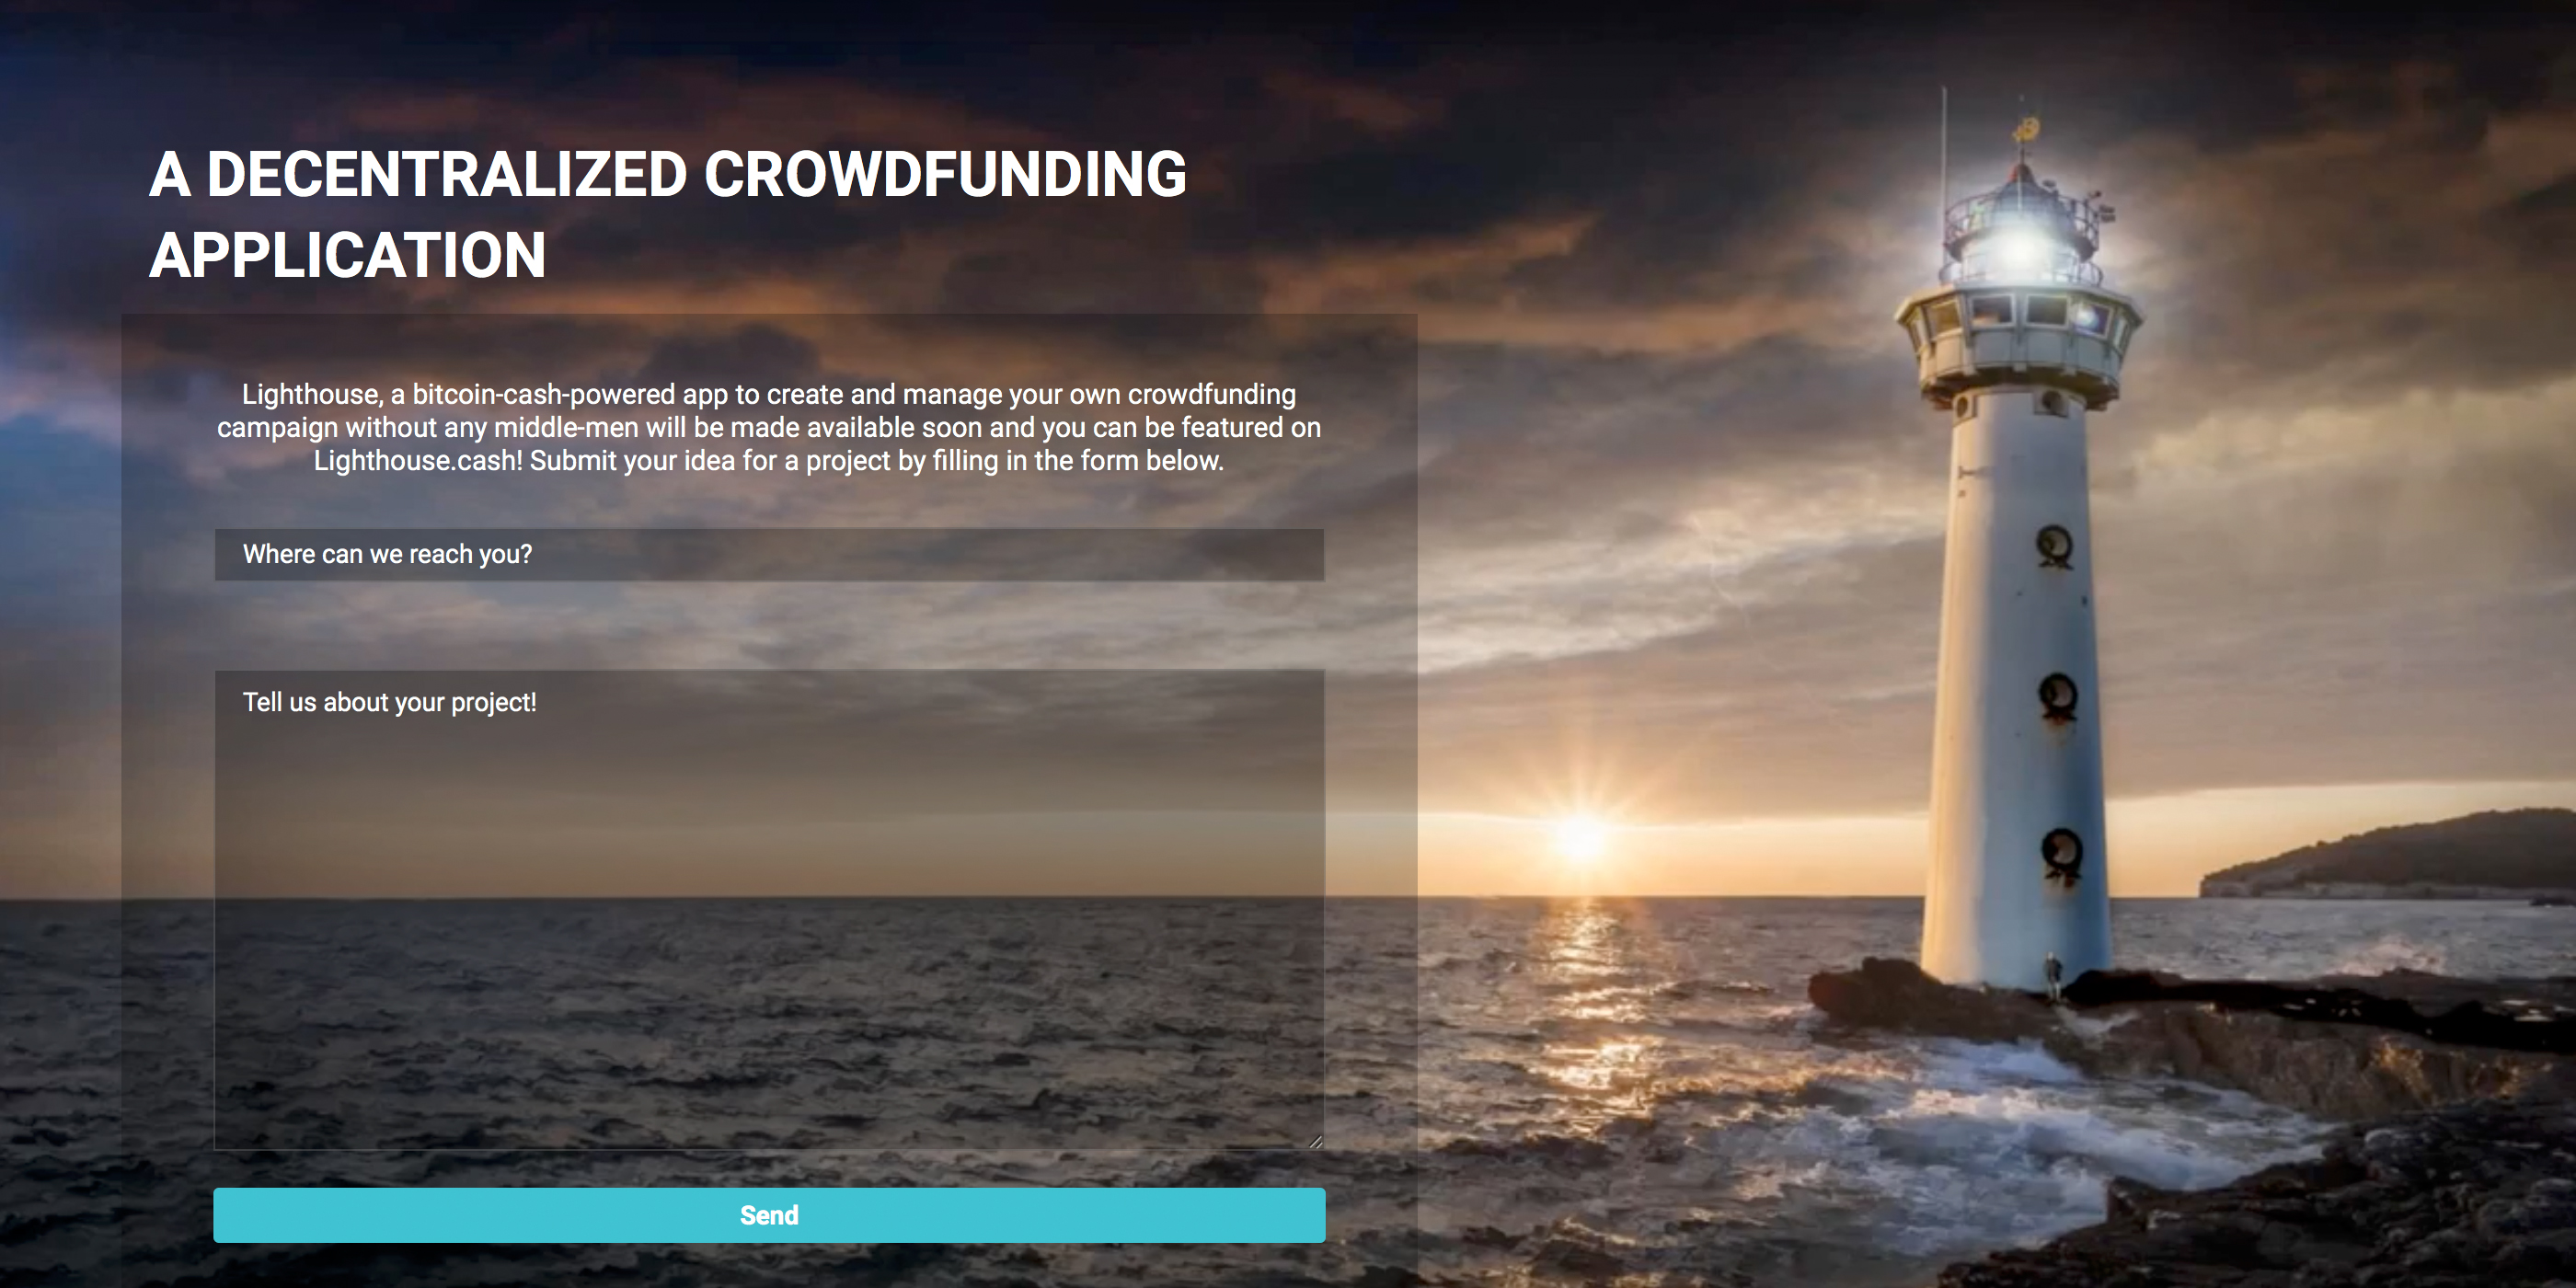 Mike Hearn's Crowdfunding Project Has Been Resurrected — Meet Lighthouse.cash